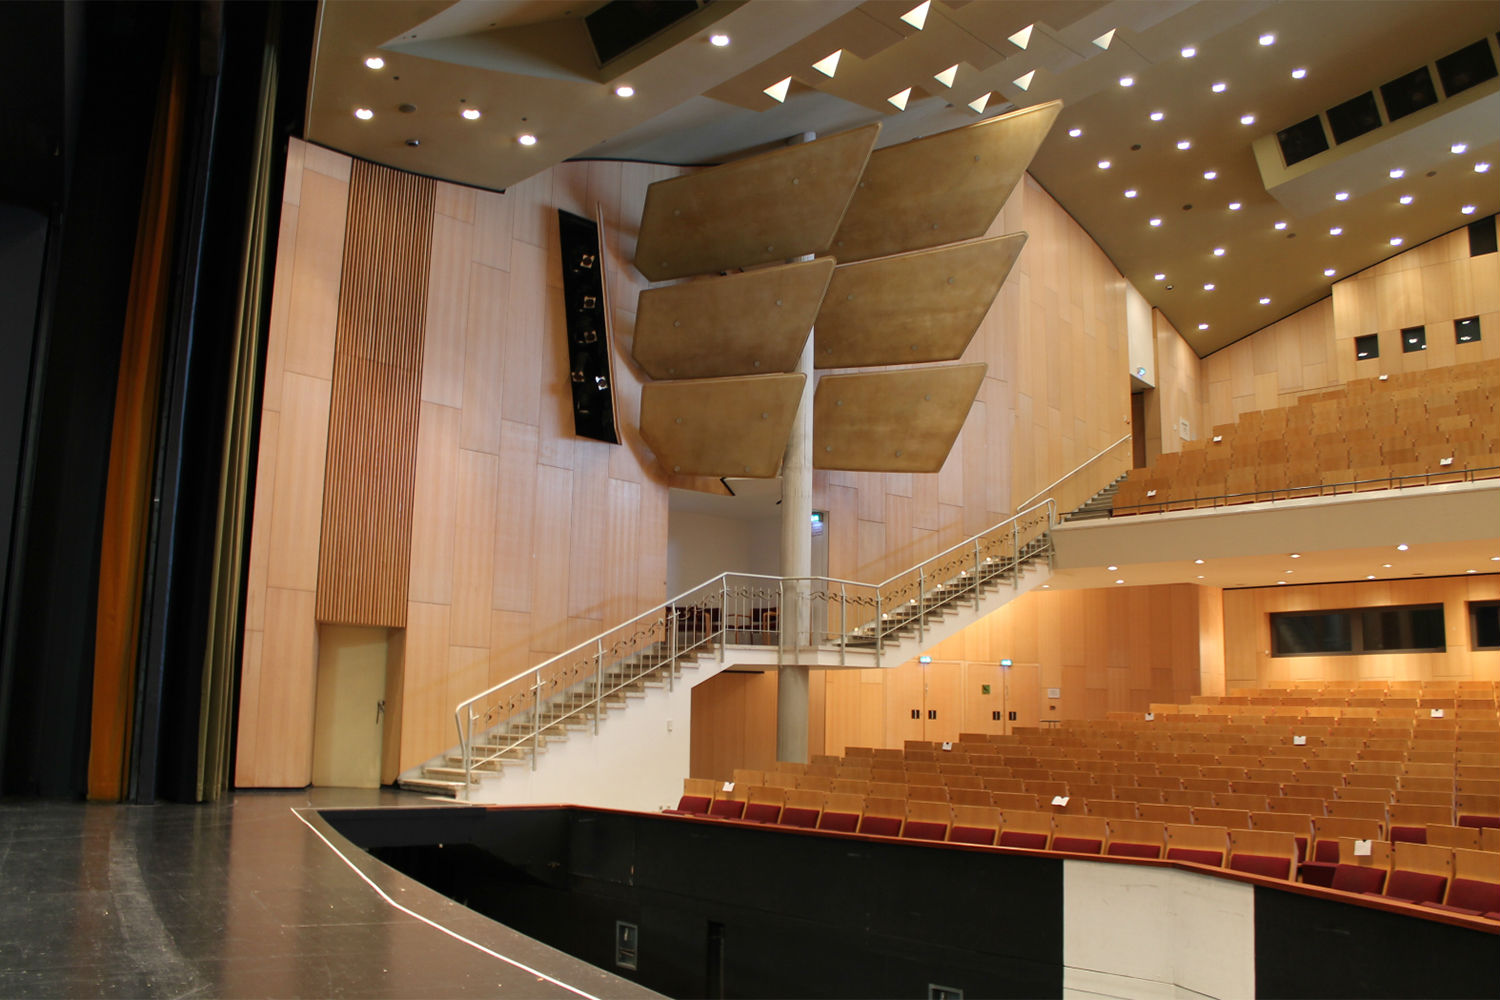 Scharoun-Theater in Wolfsburg, Germany. Electro-acoustics systems and media systems engineering provided by ADA-AMC, a WSDG Company. Theater Side to back